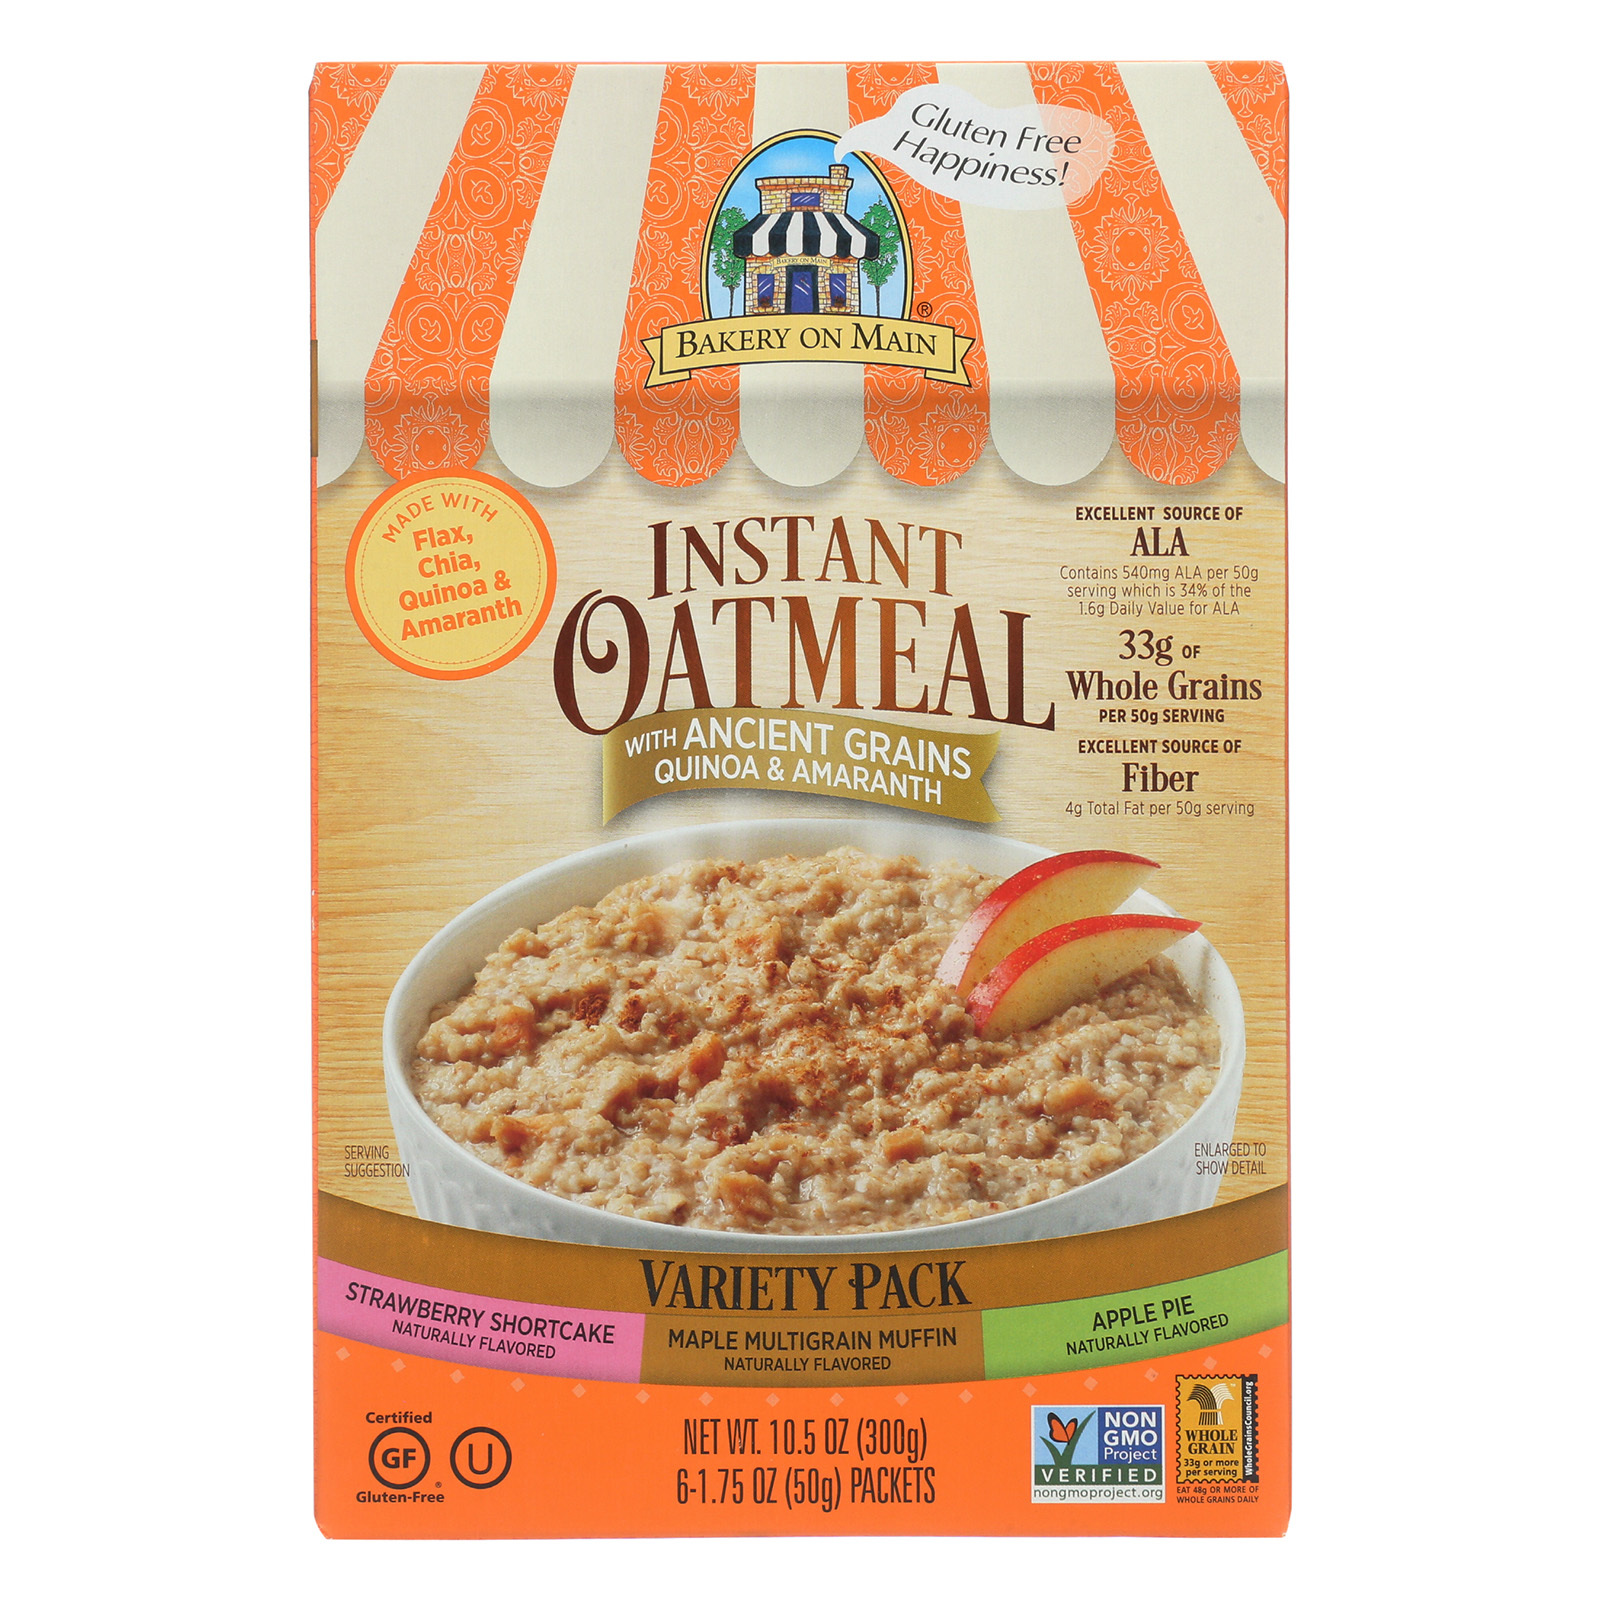 Bakery On Main Instant Oatmeal - Case of 6 - 10.5 oz.